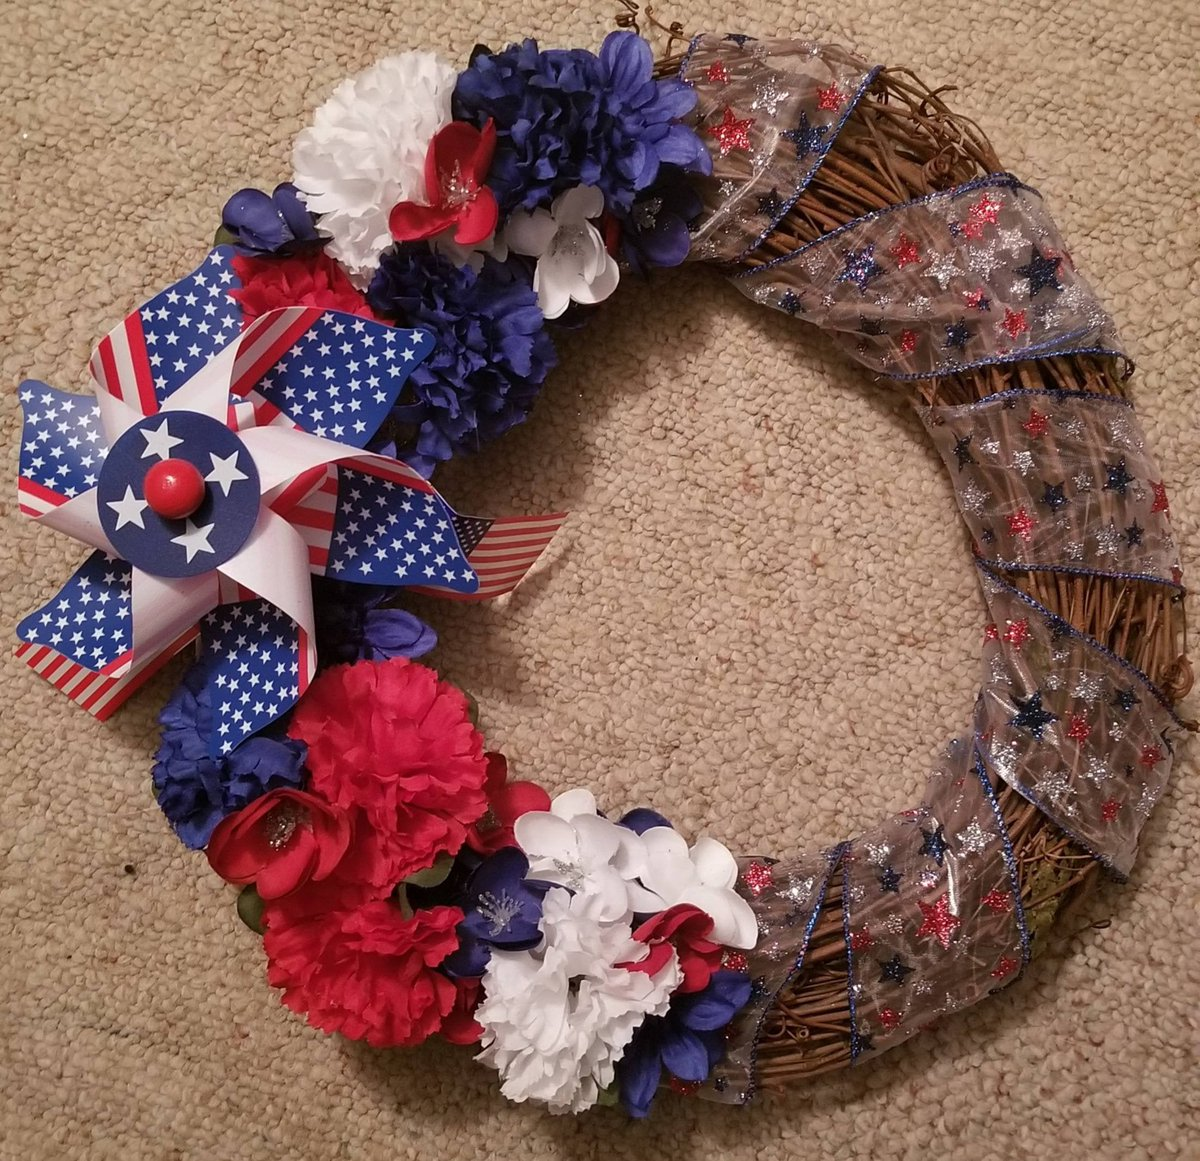 Excited to share the latest addition to my #etsy shop: 4th of July, red white and blue American celebration 12 inch grapevine wreath etsy.me/2IlSo8v